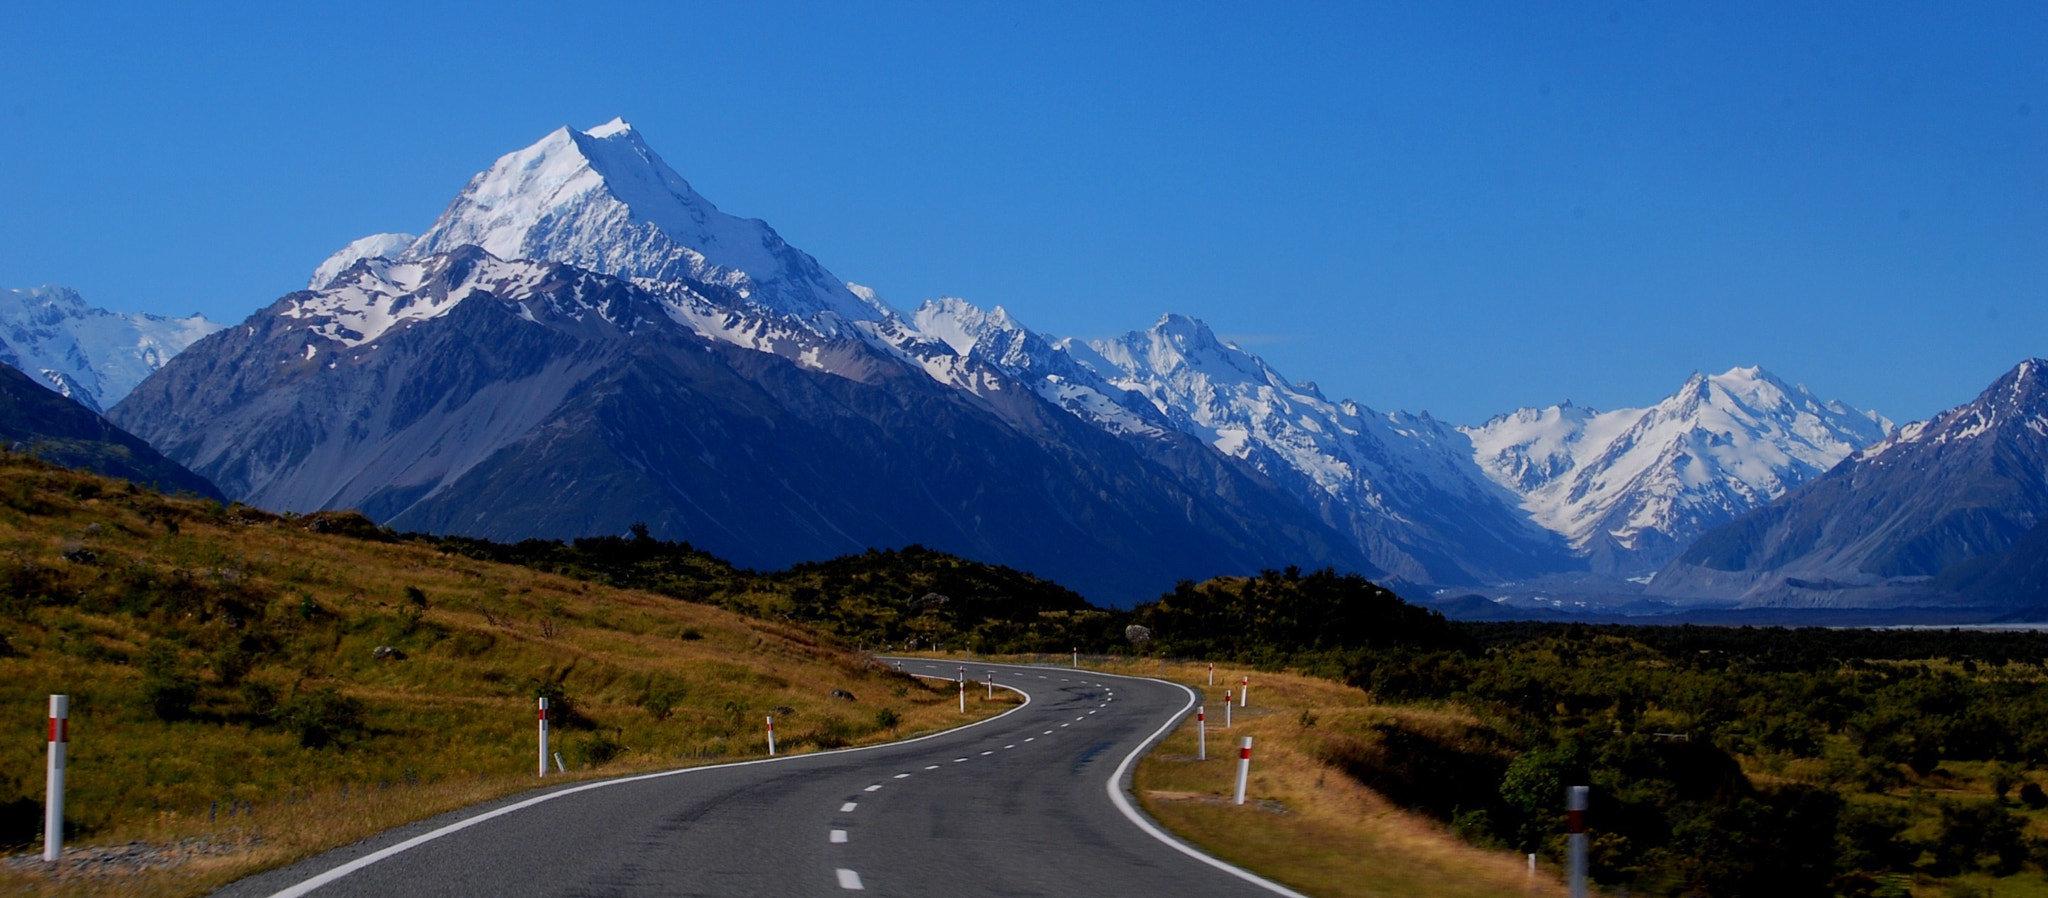 Photograph Road to Shan-gri-la by Andrew Buay on 500px